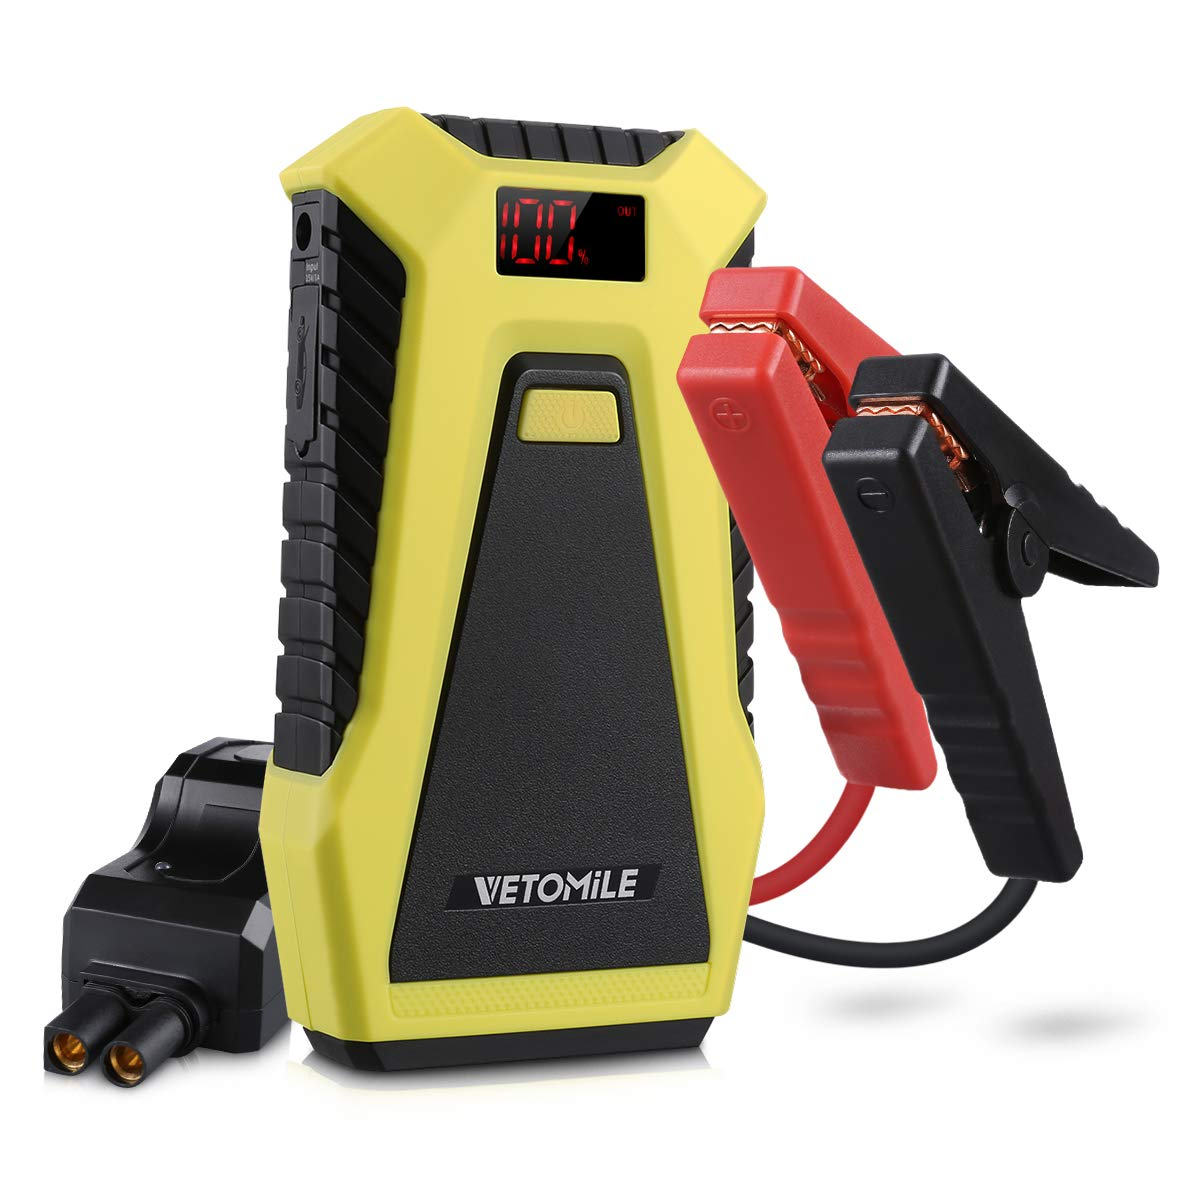 VETOMILE Ultra-Safe Jump Starter 500A 12000mAh Portable Auto Battery Booster Dual 5V USB Power Bank With Car Charger and AC Adapter for 3.0L Gas Or 2.0L Diesel Engine